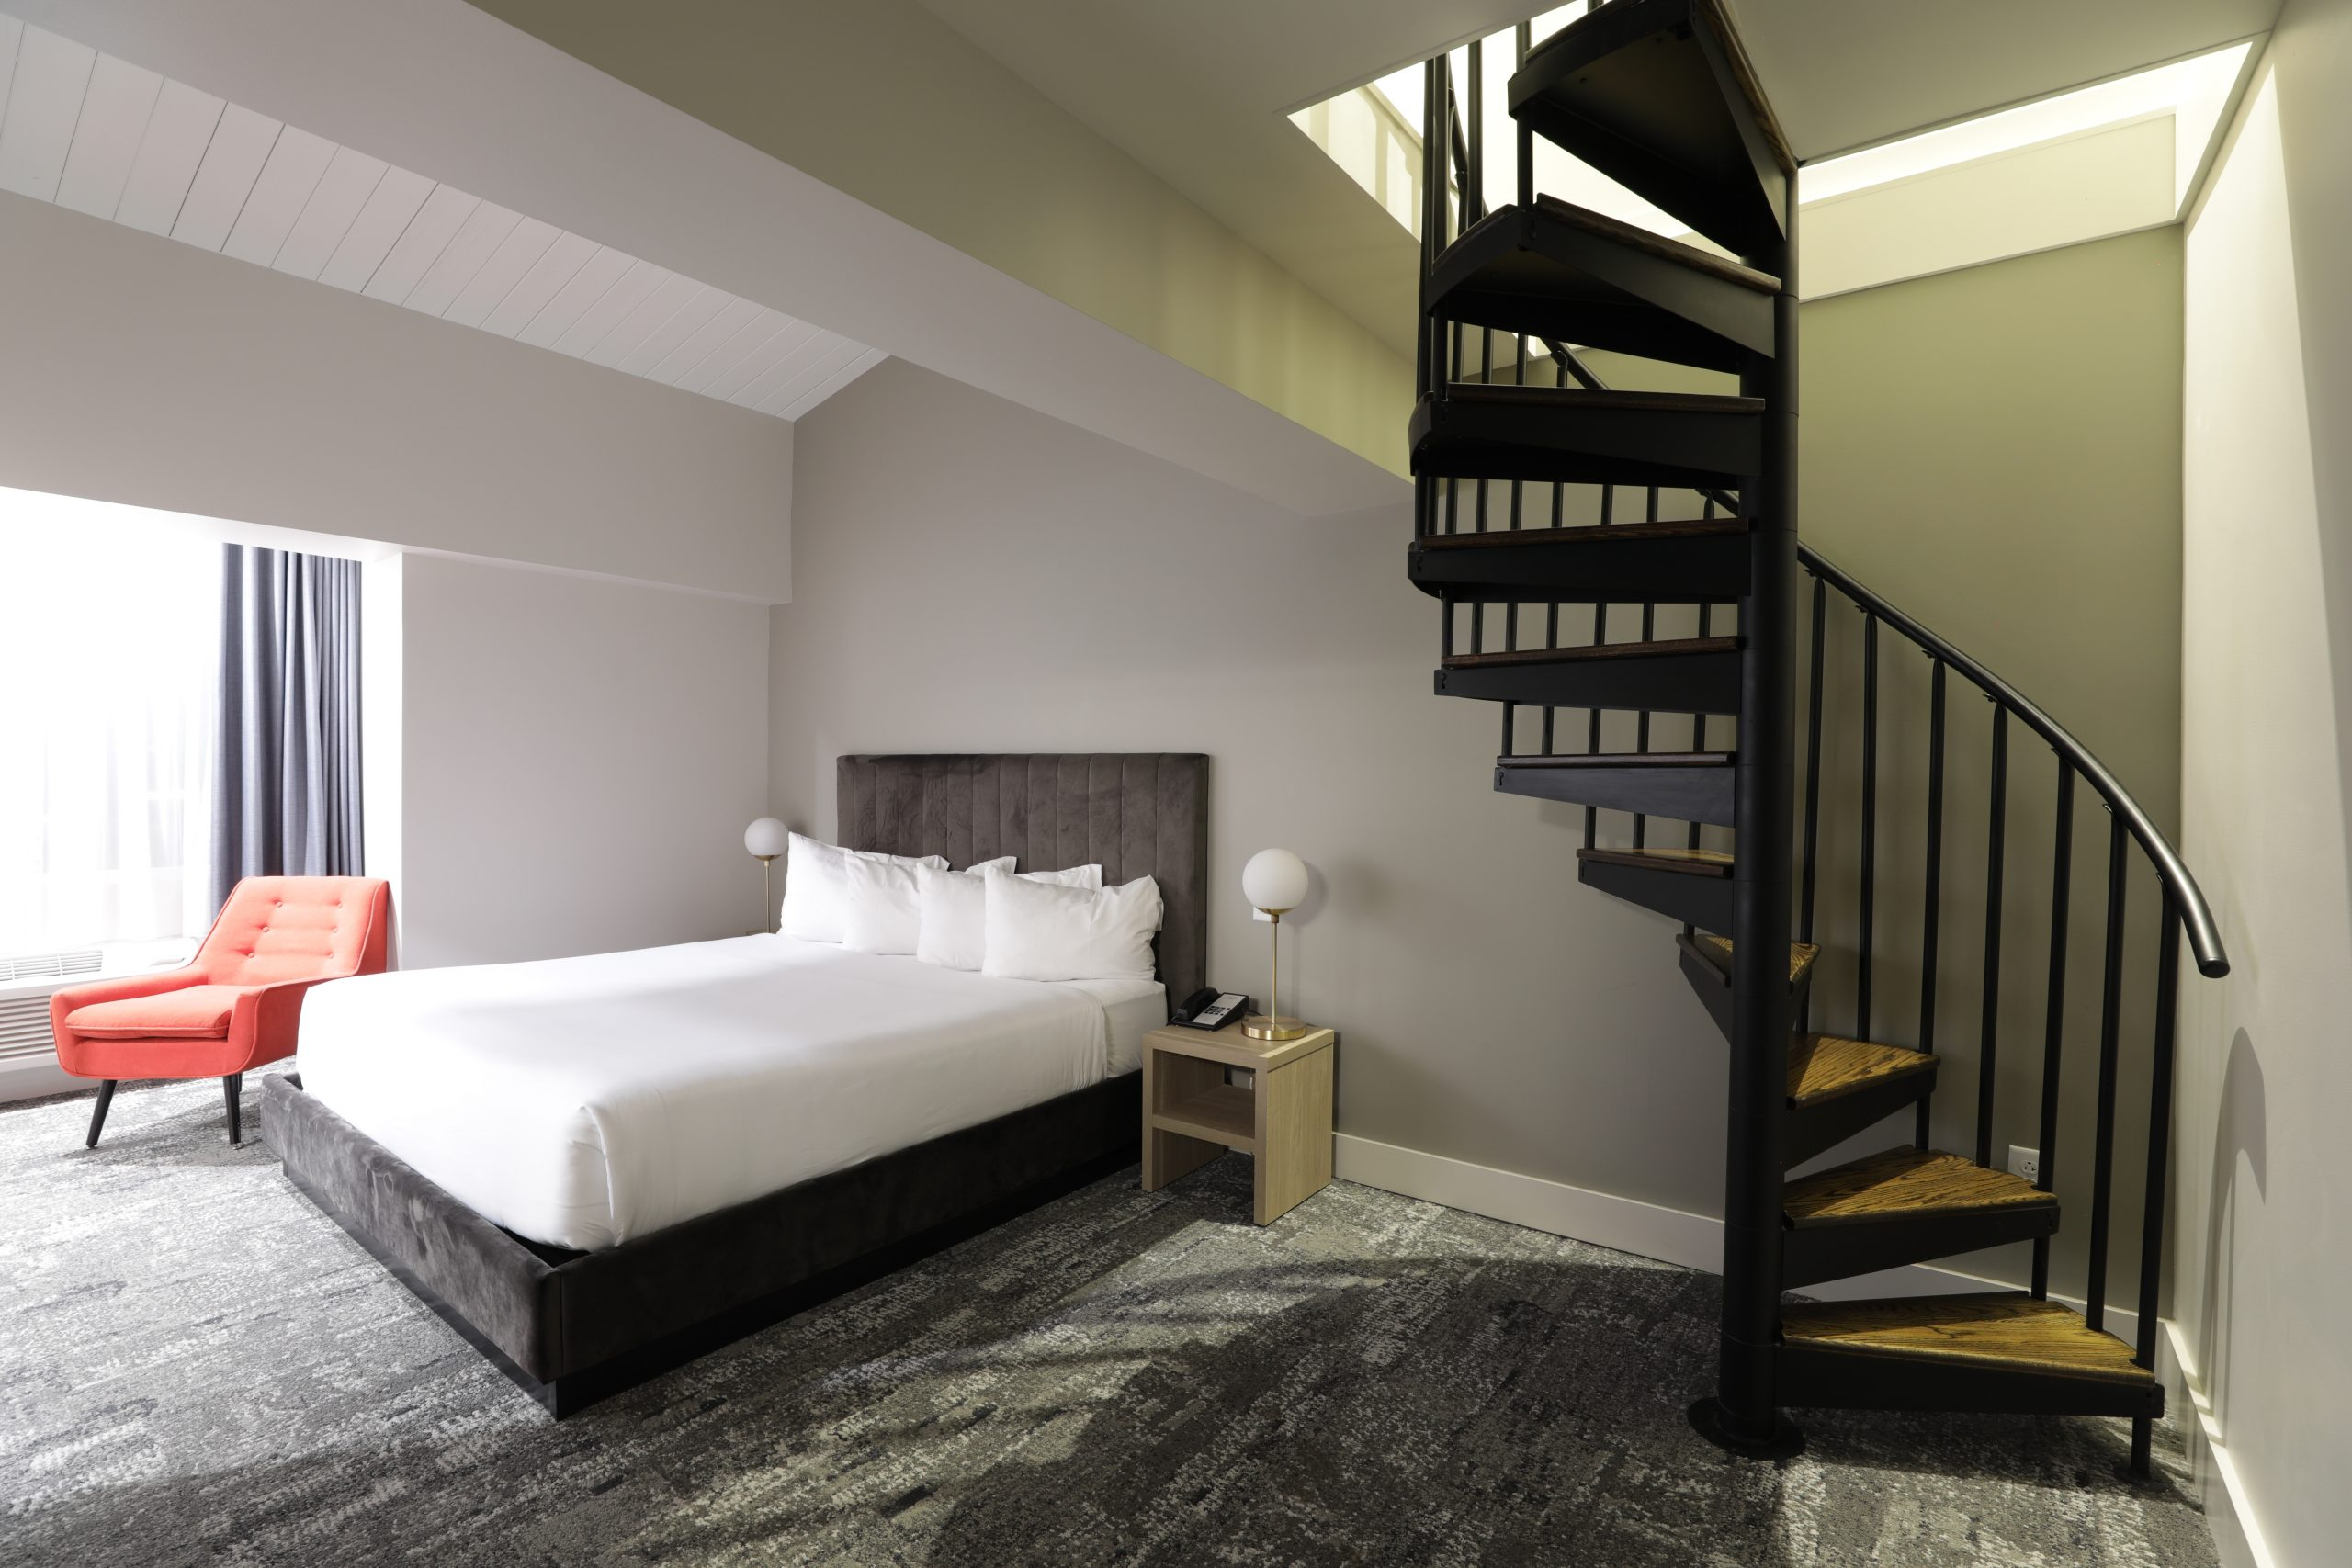 King Loft Suite with spiral staircase to loft